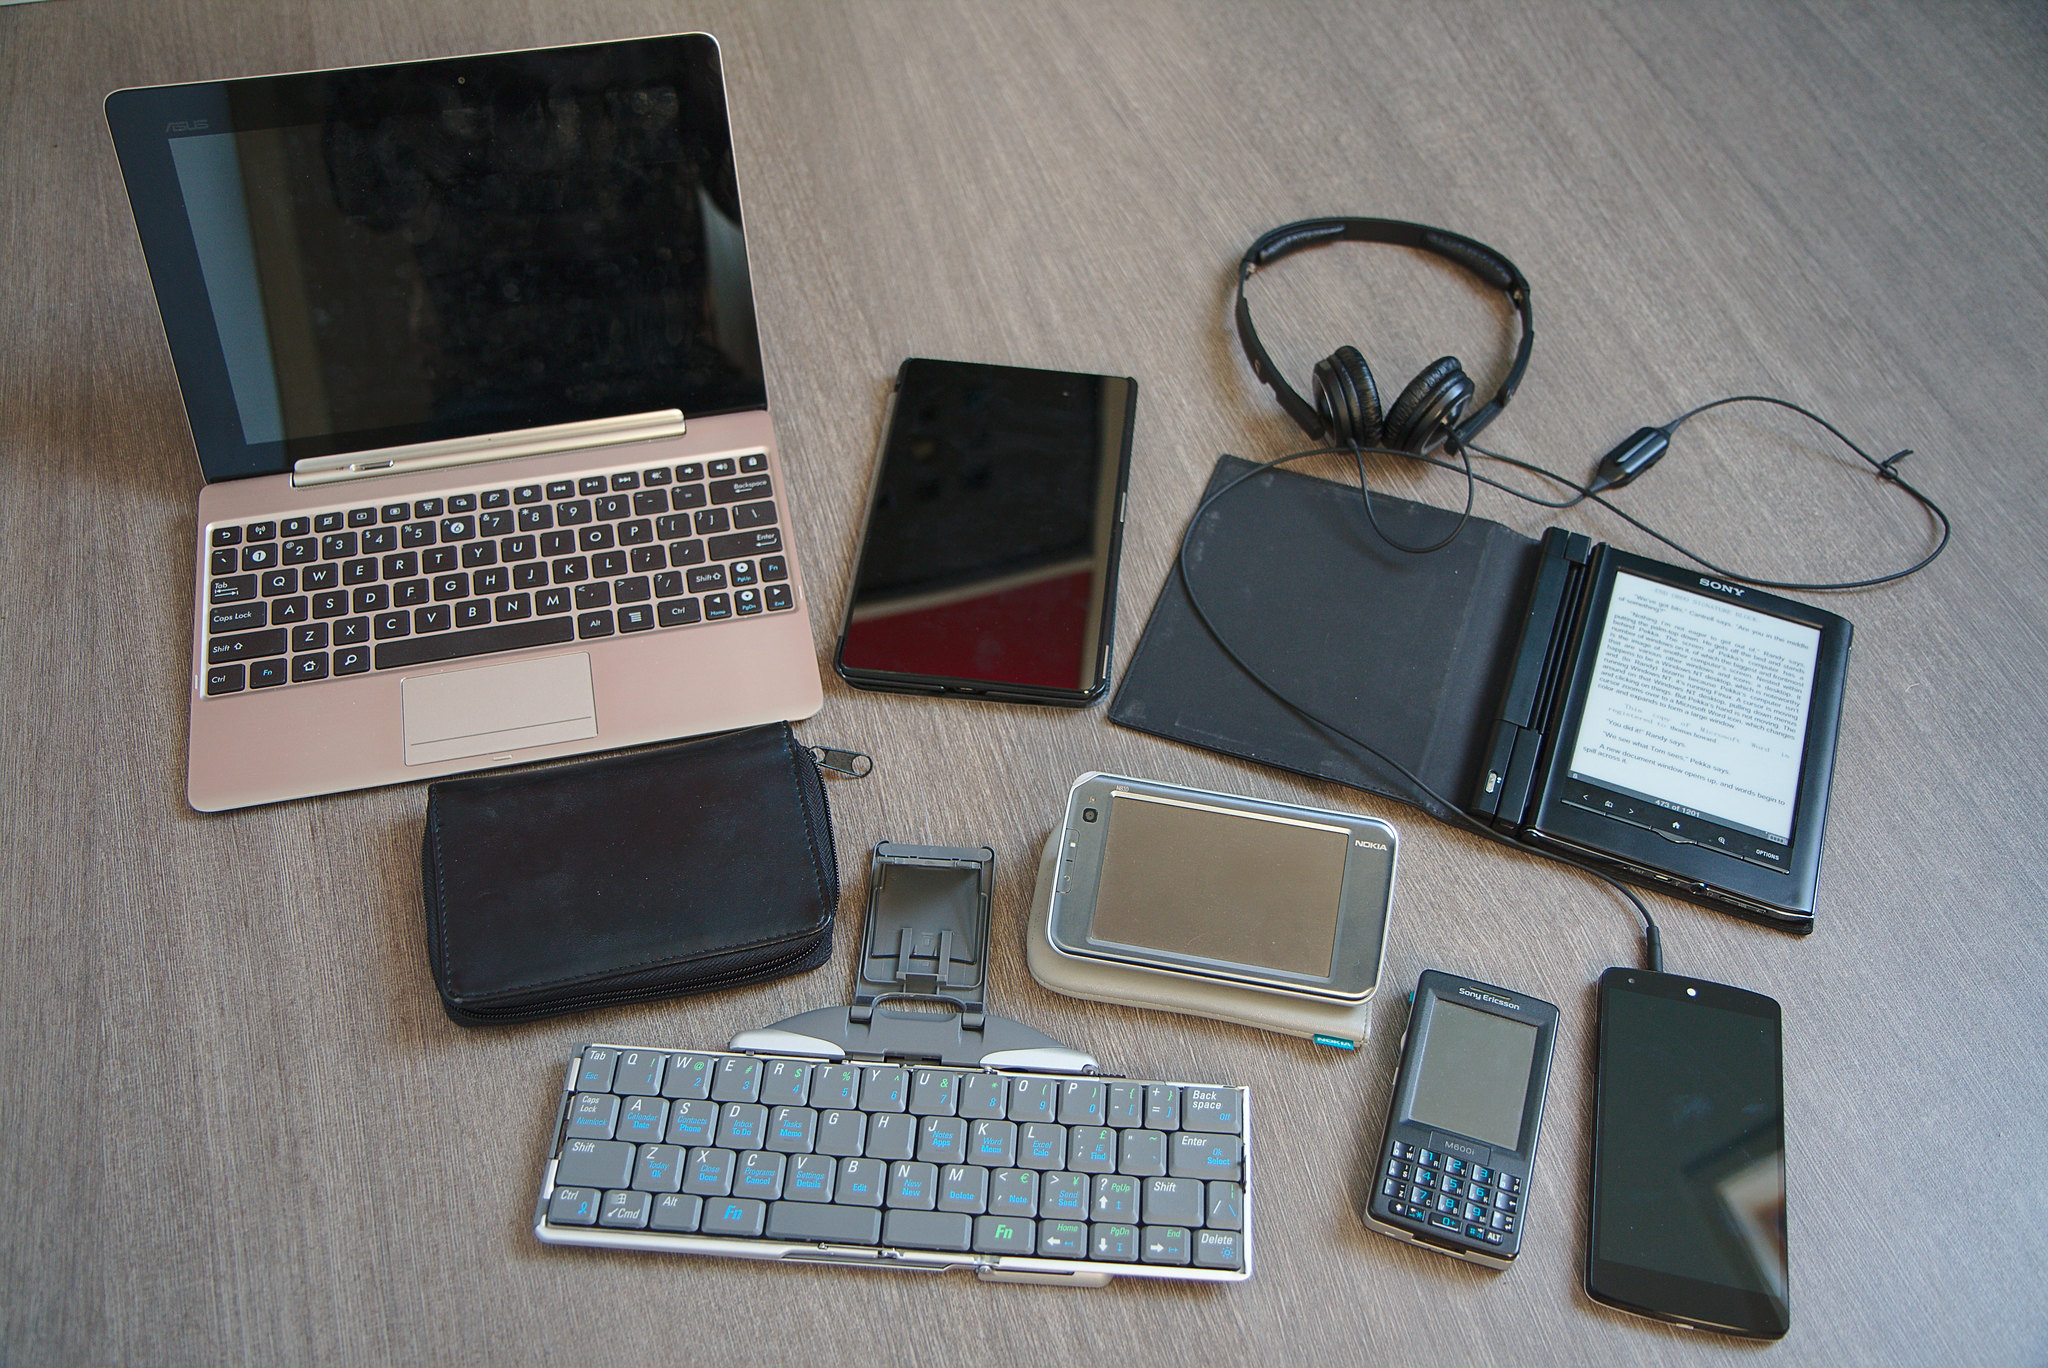 Mobile tech generations